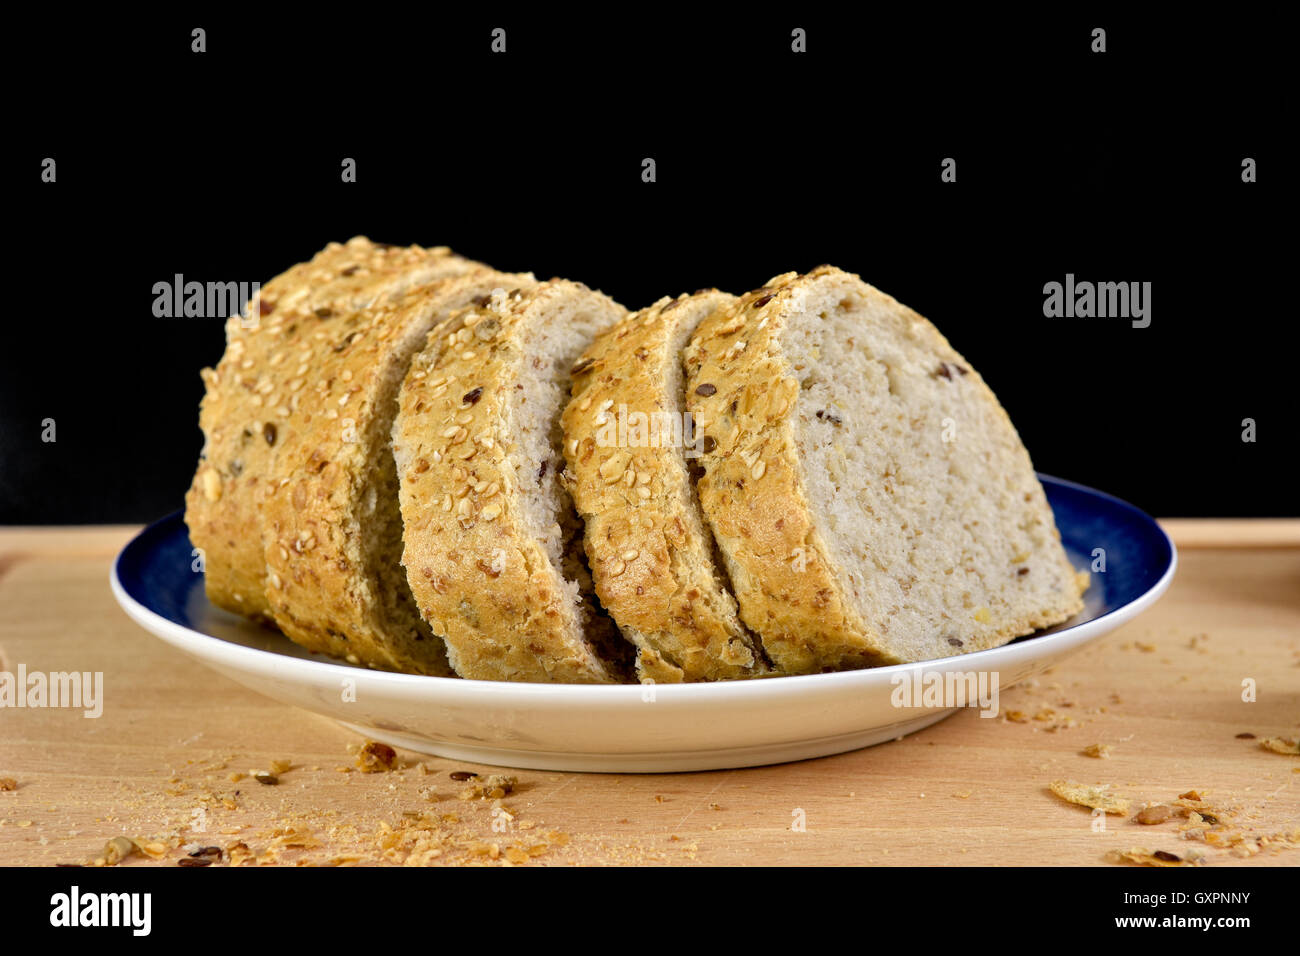 Slices of granary baguette on plate, against a black background - Stock Image